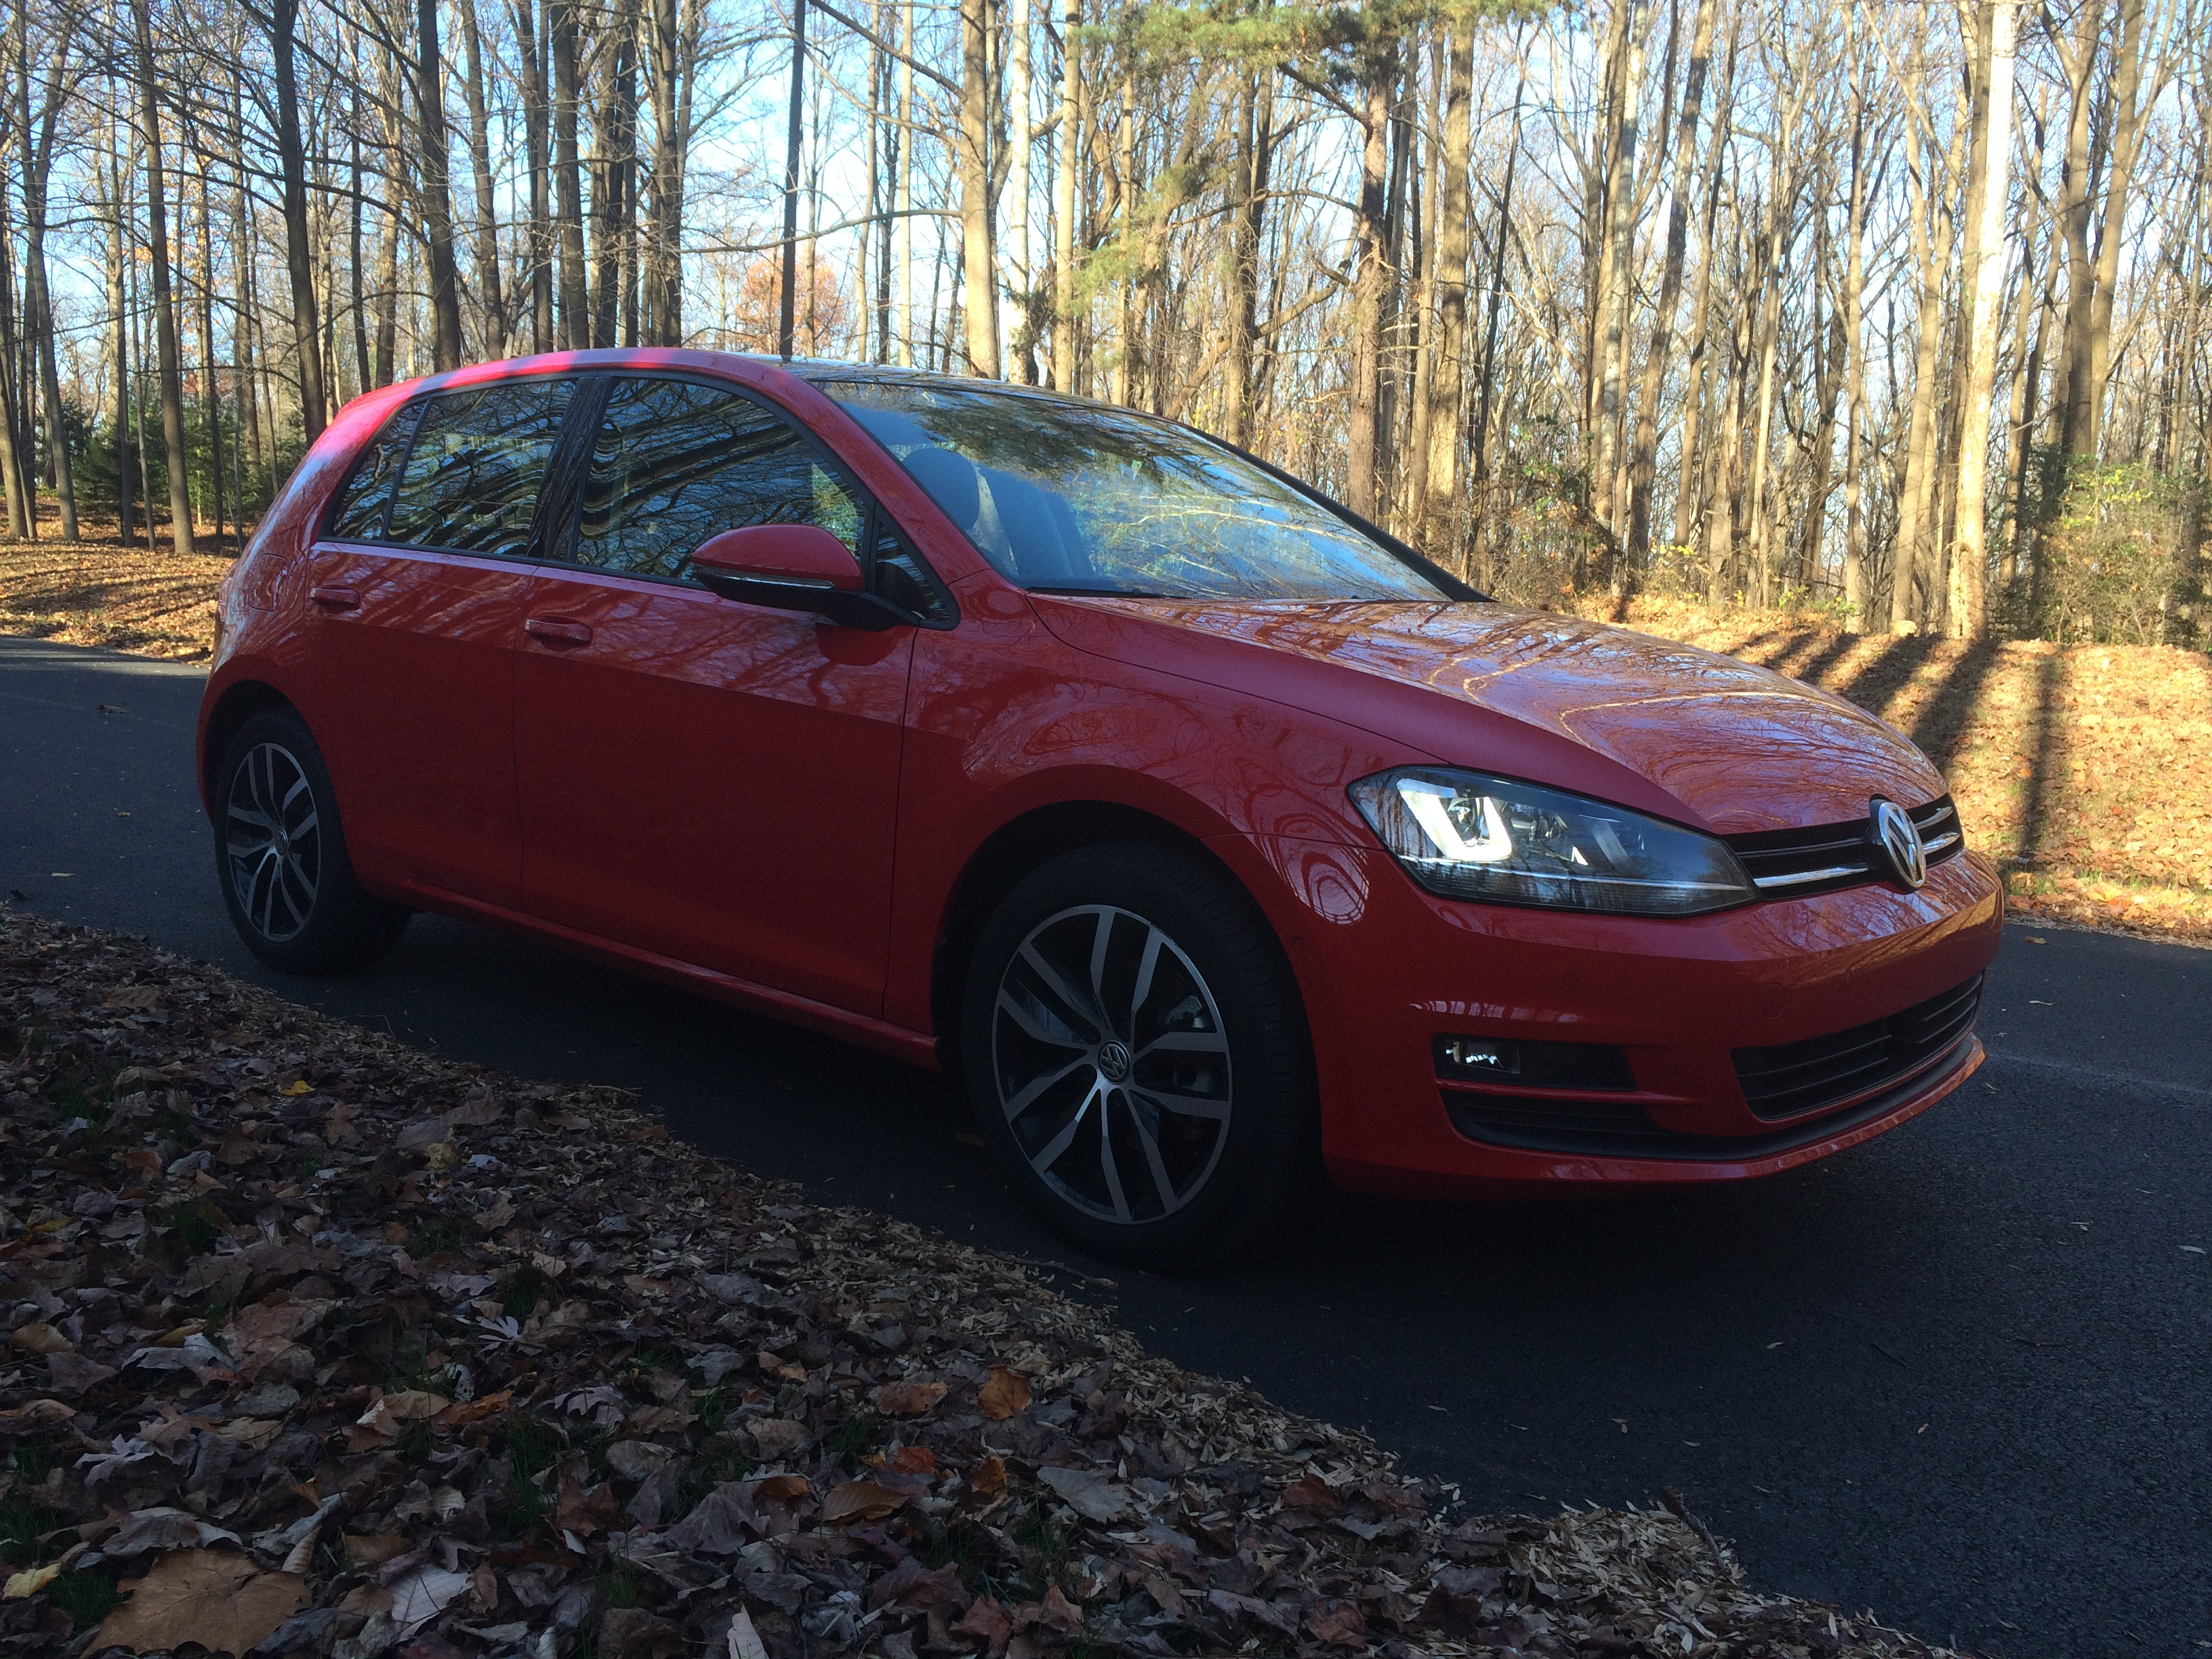 2016 VW Golf: More tech, safety features in fun-to-drive package